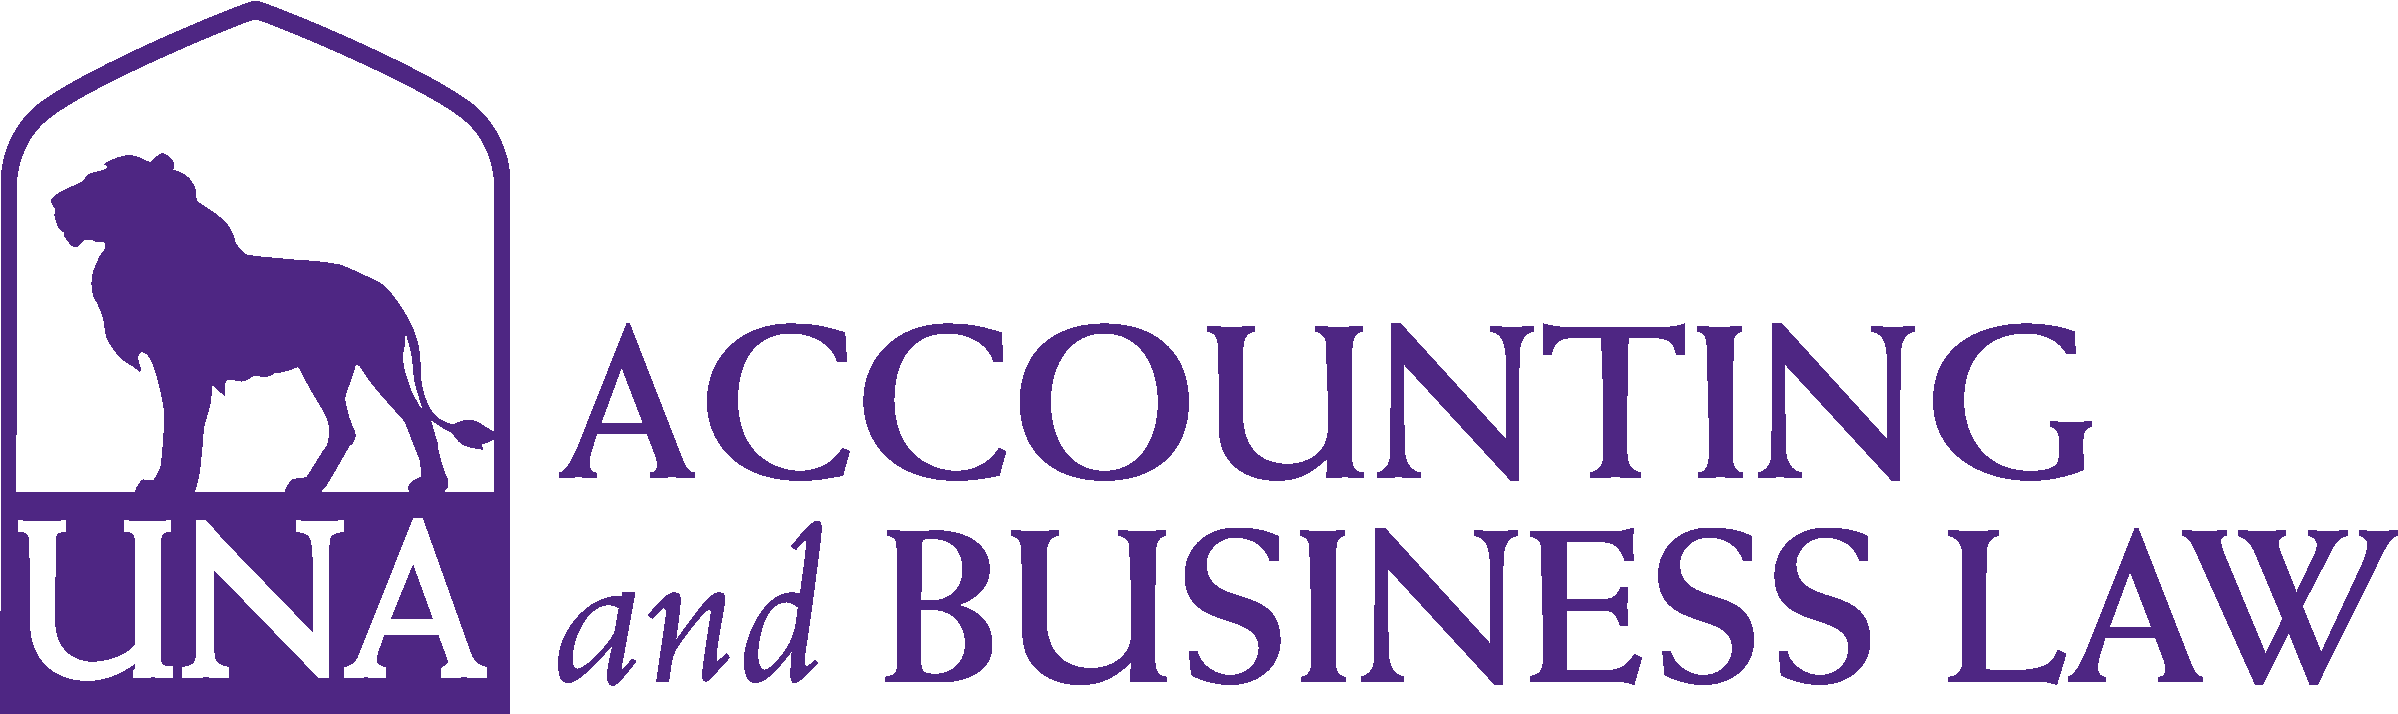 College of Business - Accounting & Business Law Logo - Purple - Version 3